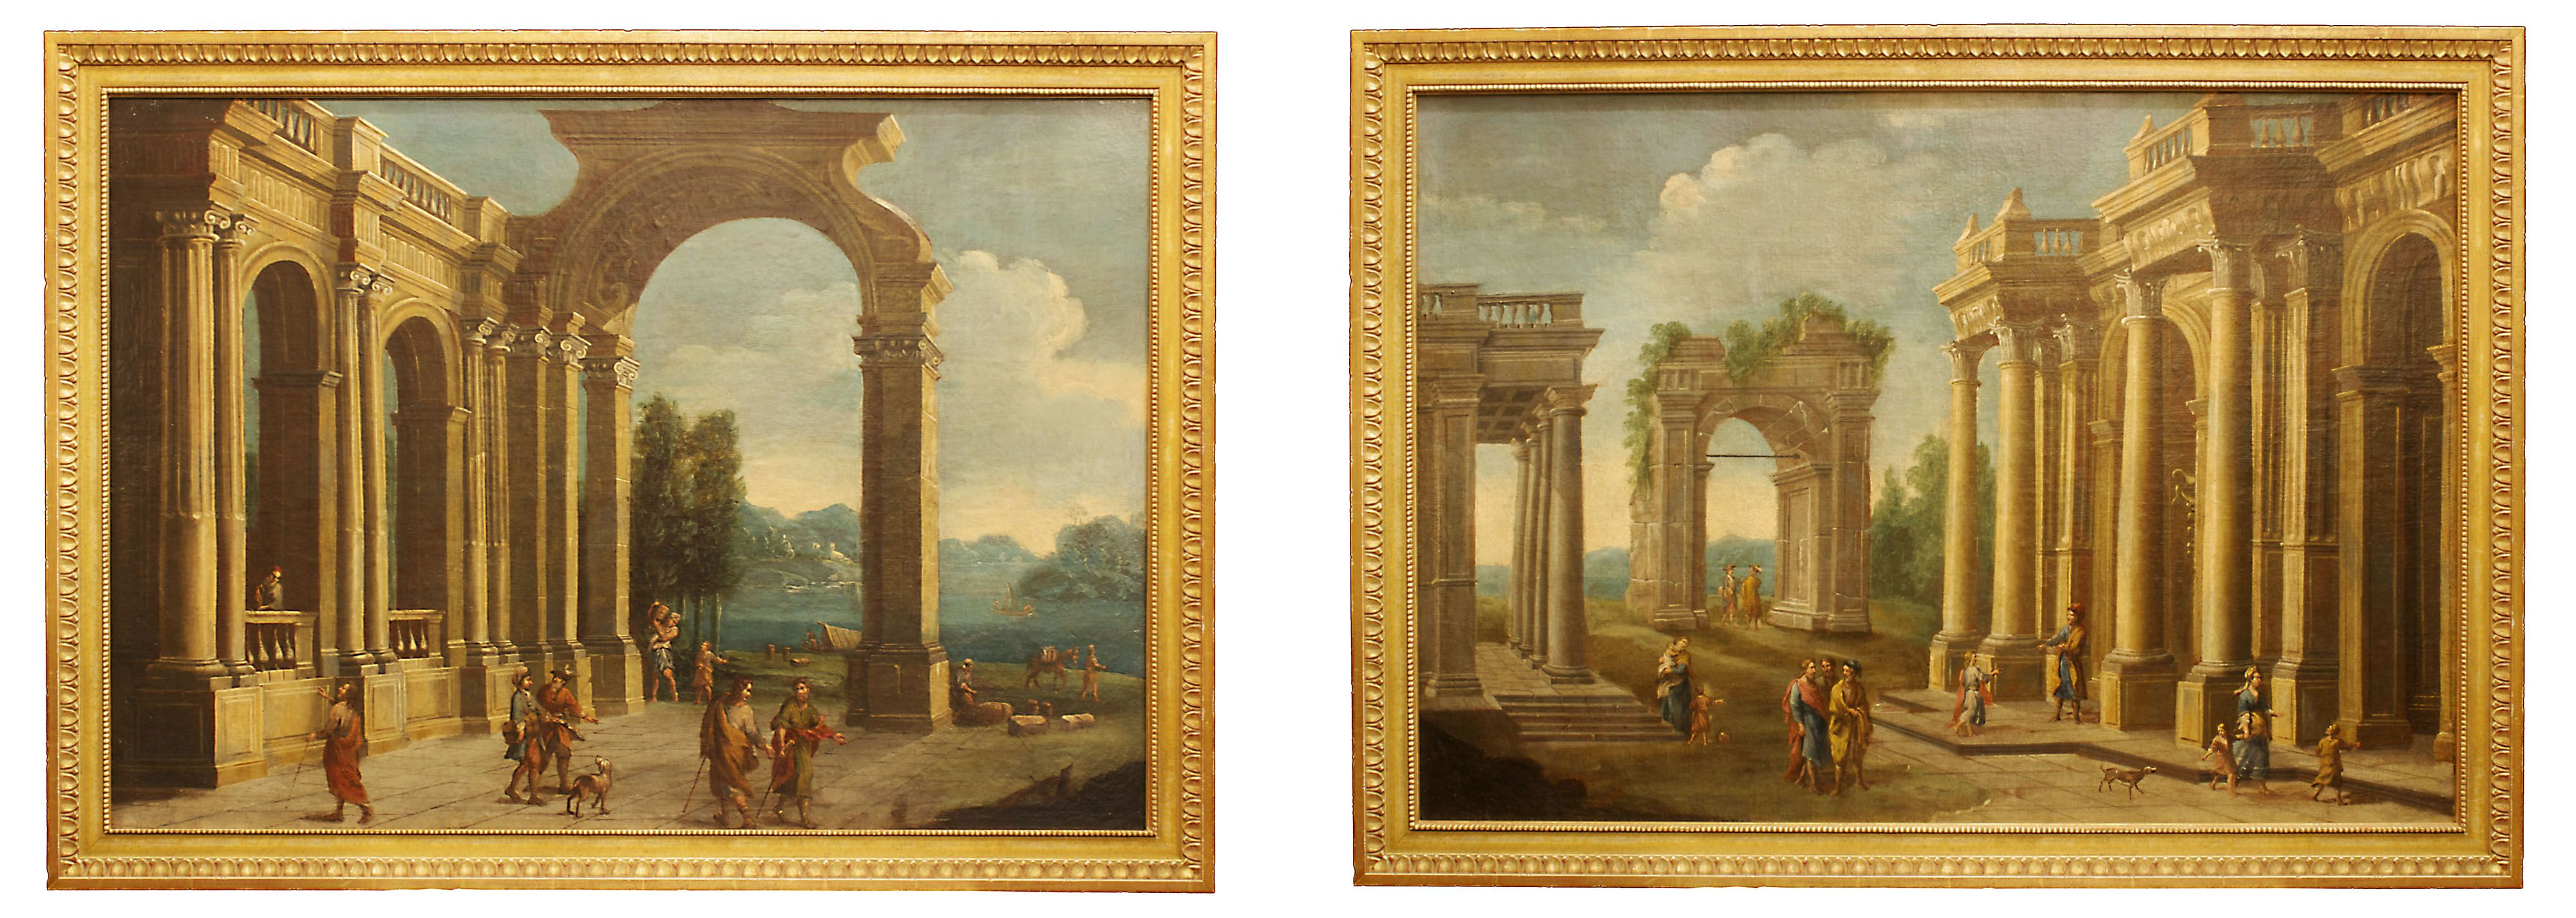 A pair of magnificent Italian mid 18th century, oil on canvas, landscapes. Each painting with very rich and vibrant colors depicting figures among ruins. In lieu of a signature the artist has marked each painting with his fingerprint, a very unique concept.